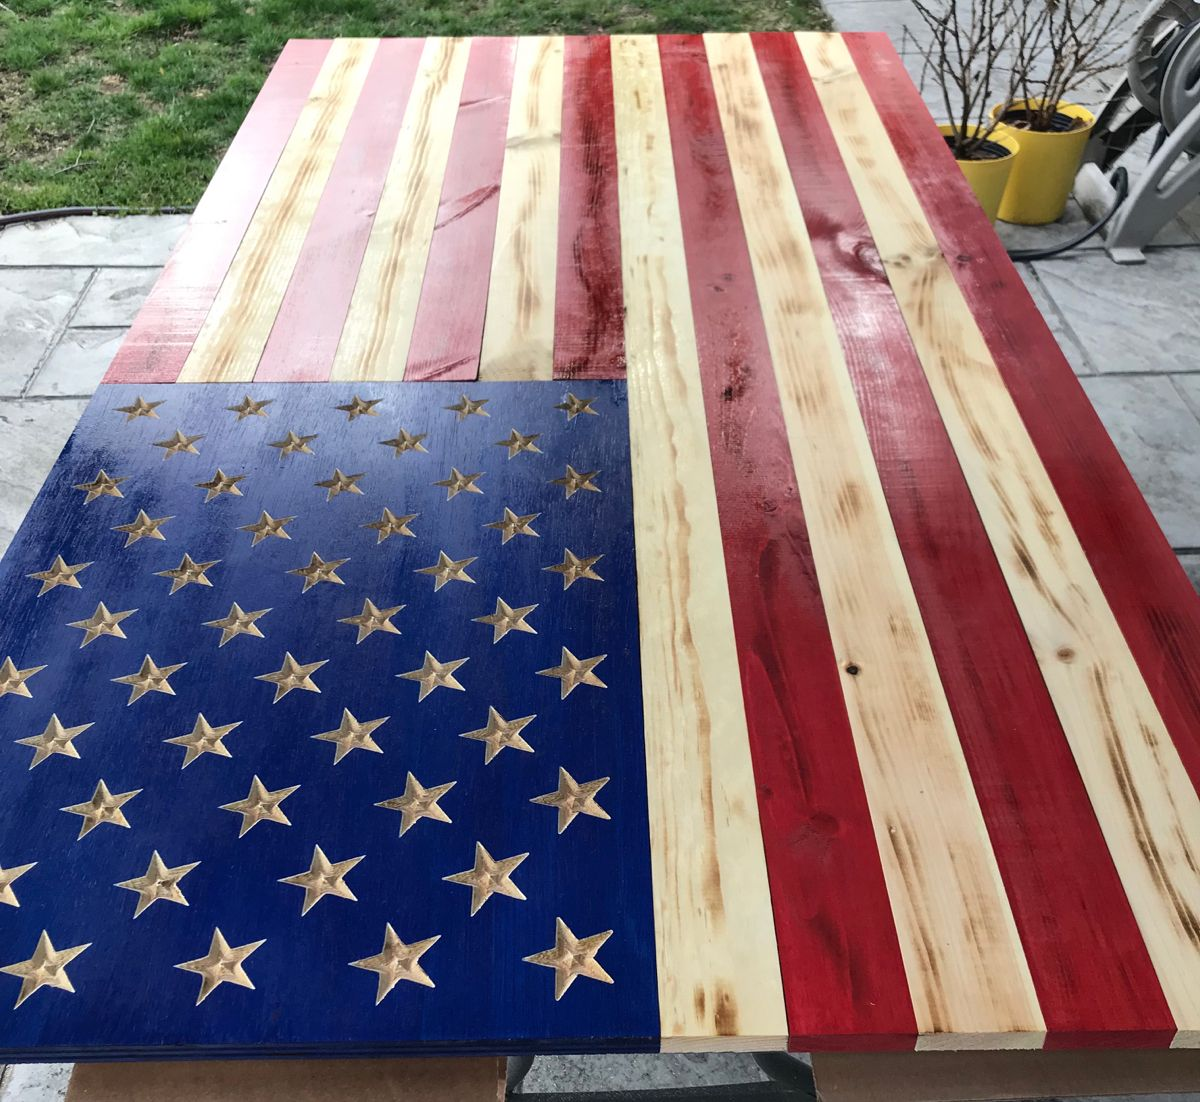 Extra Large Wooden American Flag Carved Stars On Union 72 X 39 Inches Home Office Patriotic Wall Hanging For Indoor Outdoor In 2020 Wooden American Flag Patriotic Wall Hanging American Flag Wood